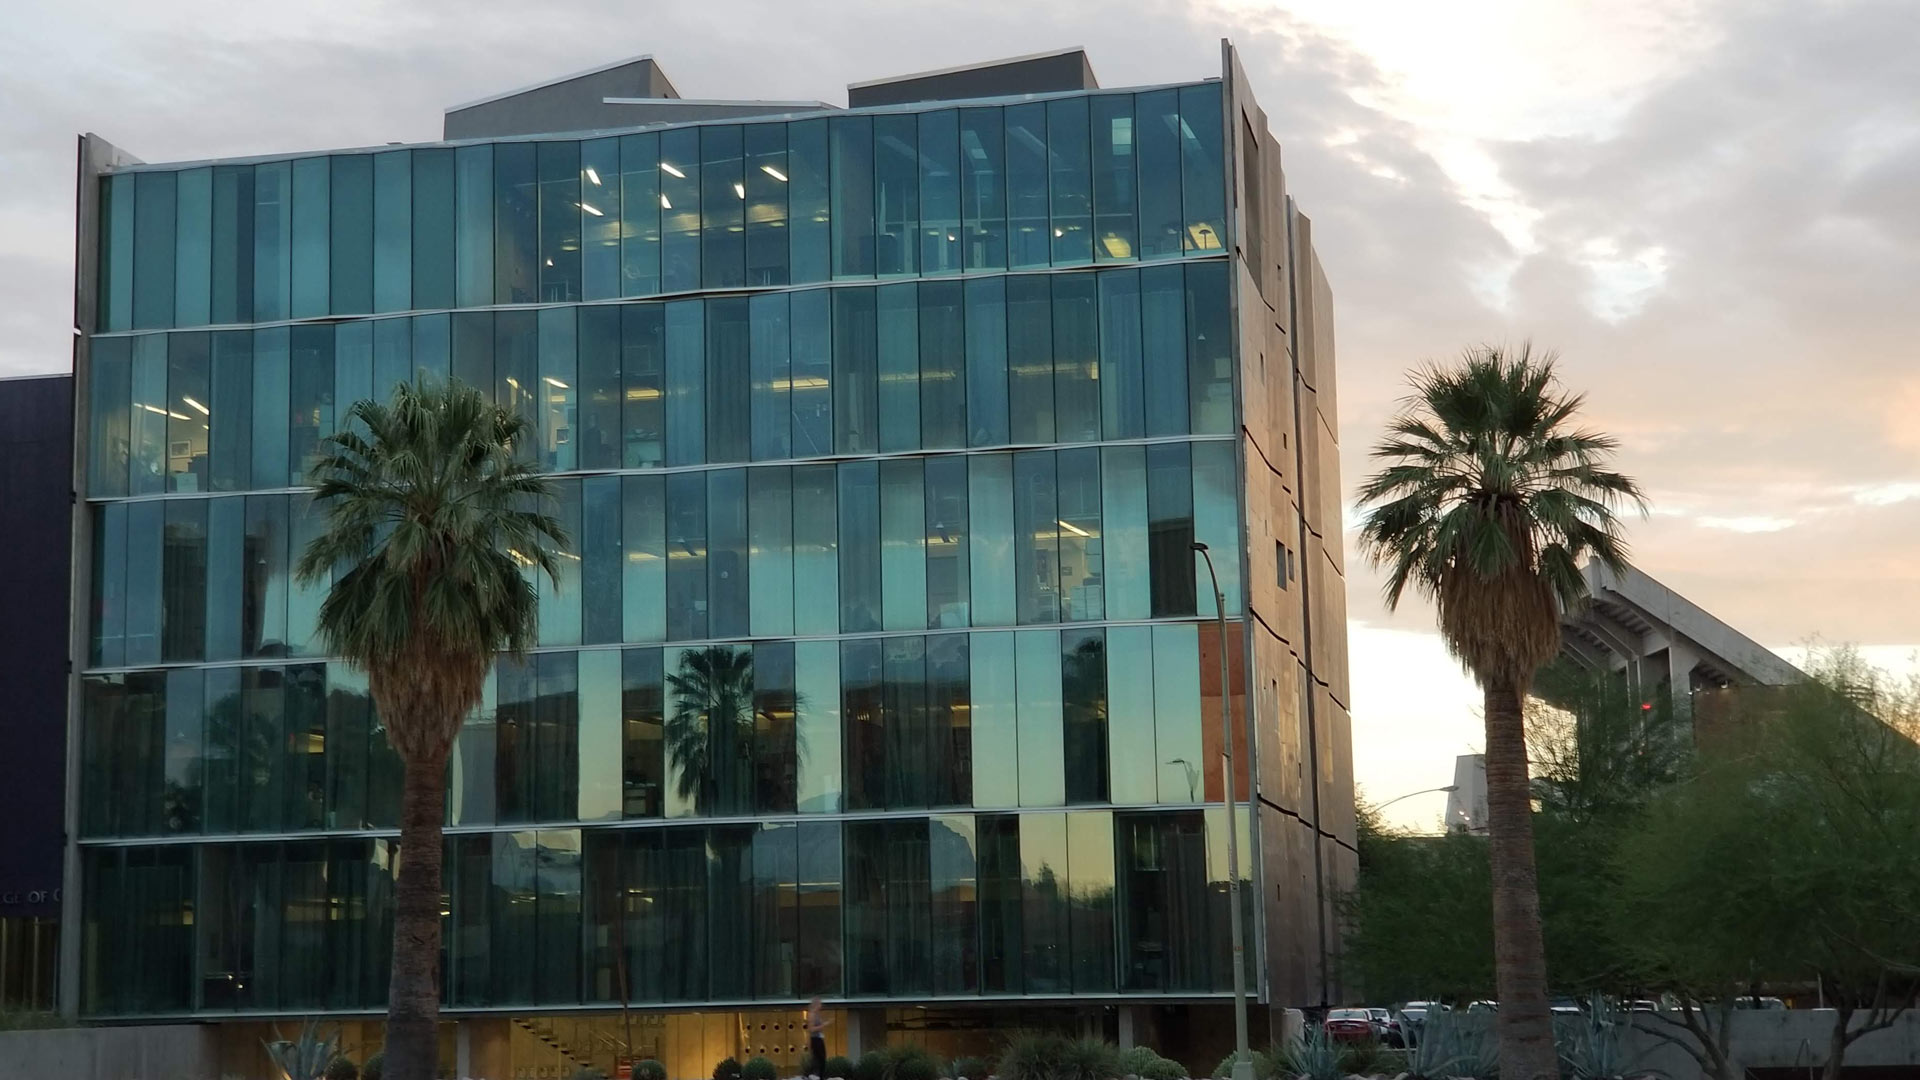 Meinel Optical Sciences building at the University of Arizona